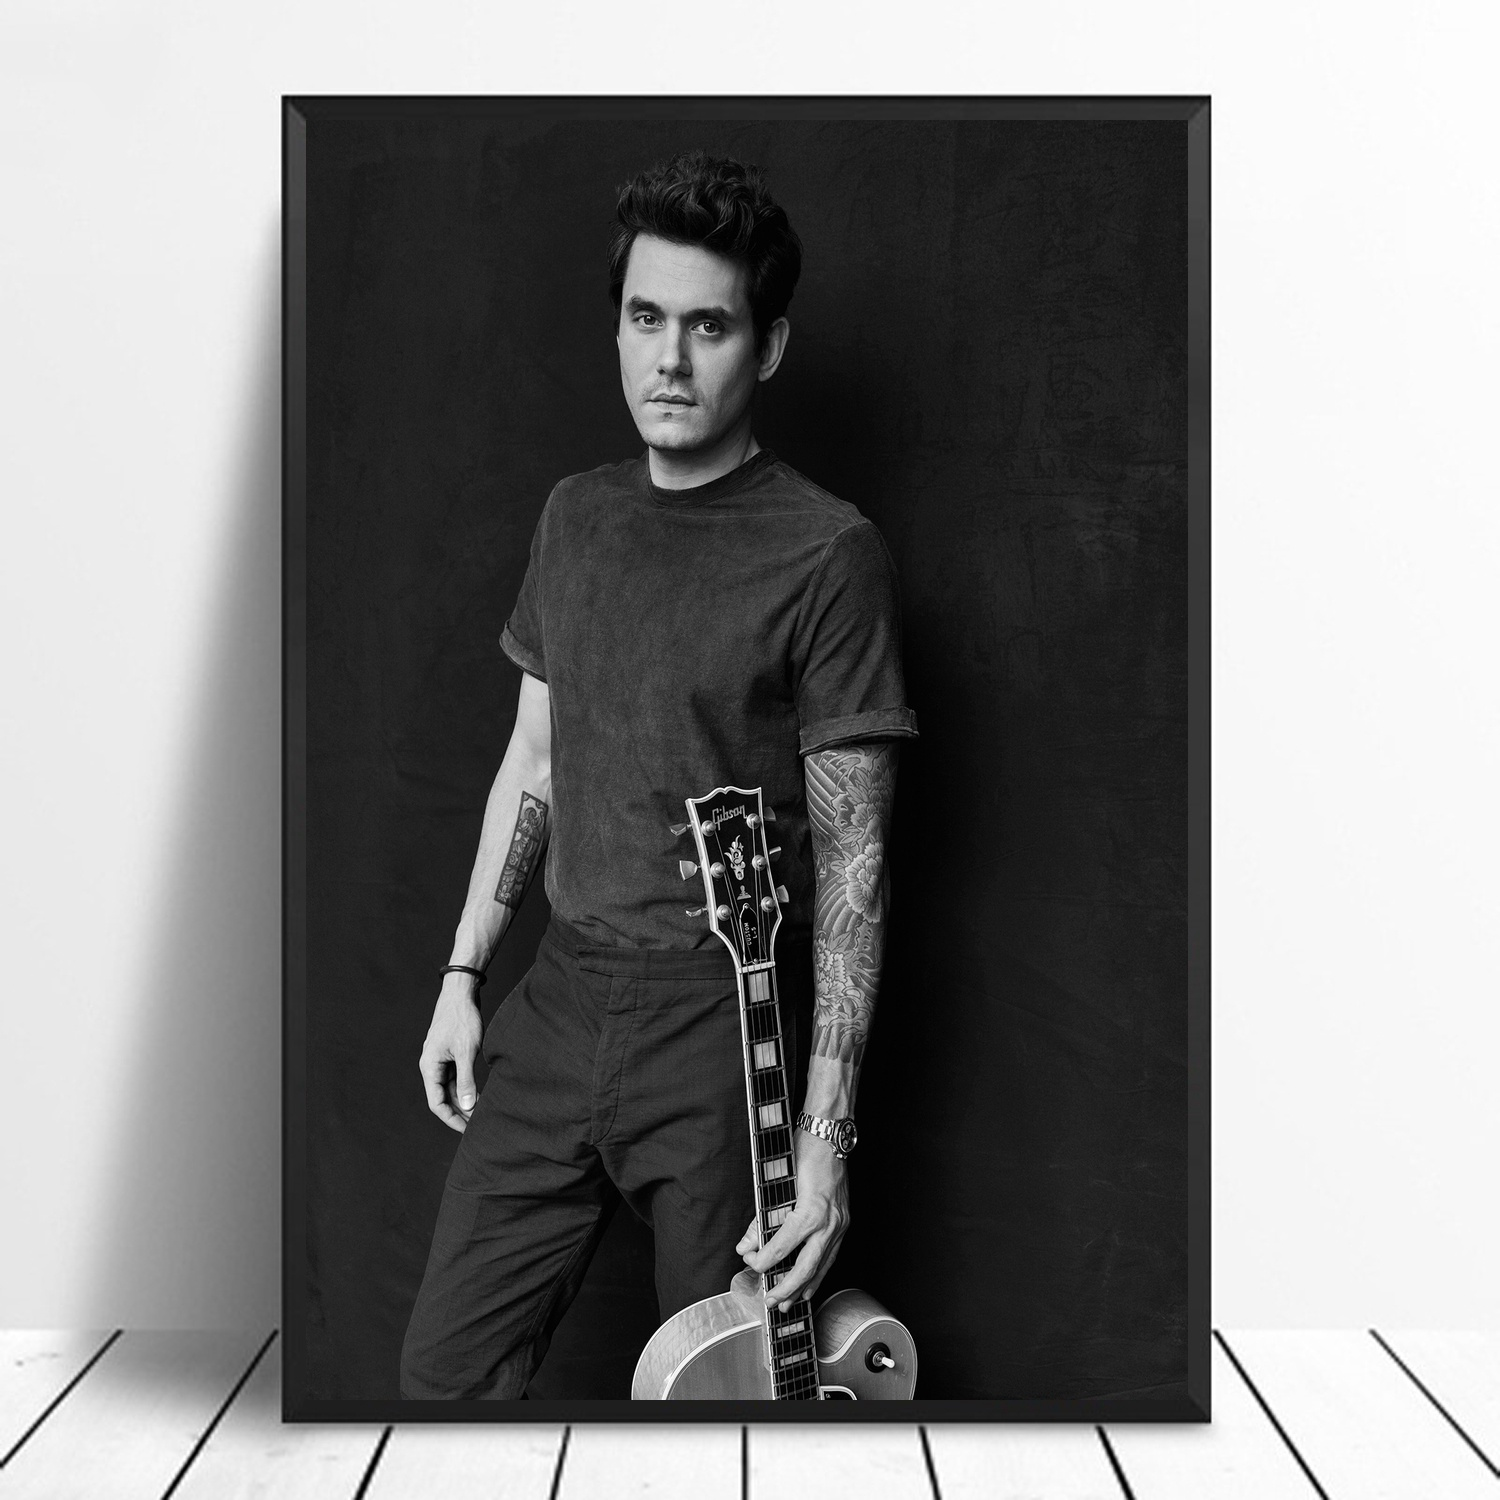 John Mayer Cool Painting: John Mayer Music Poster Canvas Painting Print Wall Art